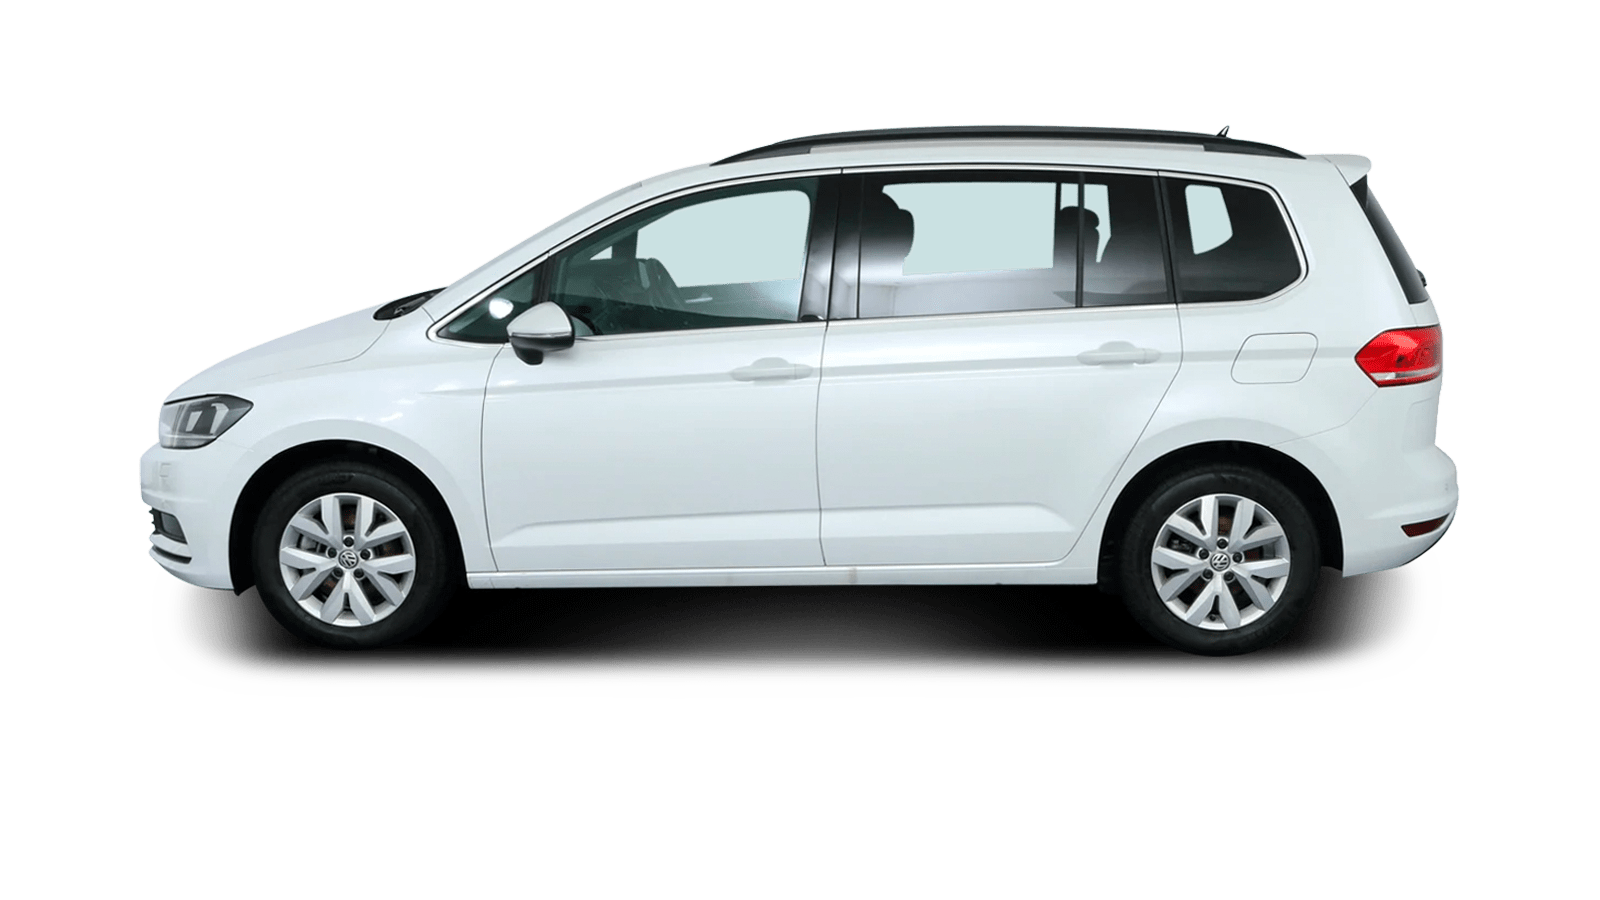 VW Touran White back - Clyde car subscription